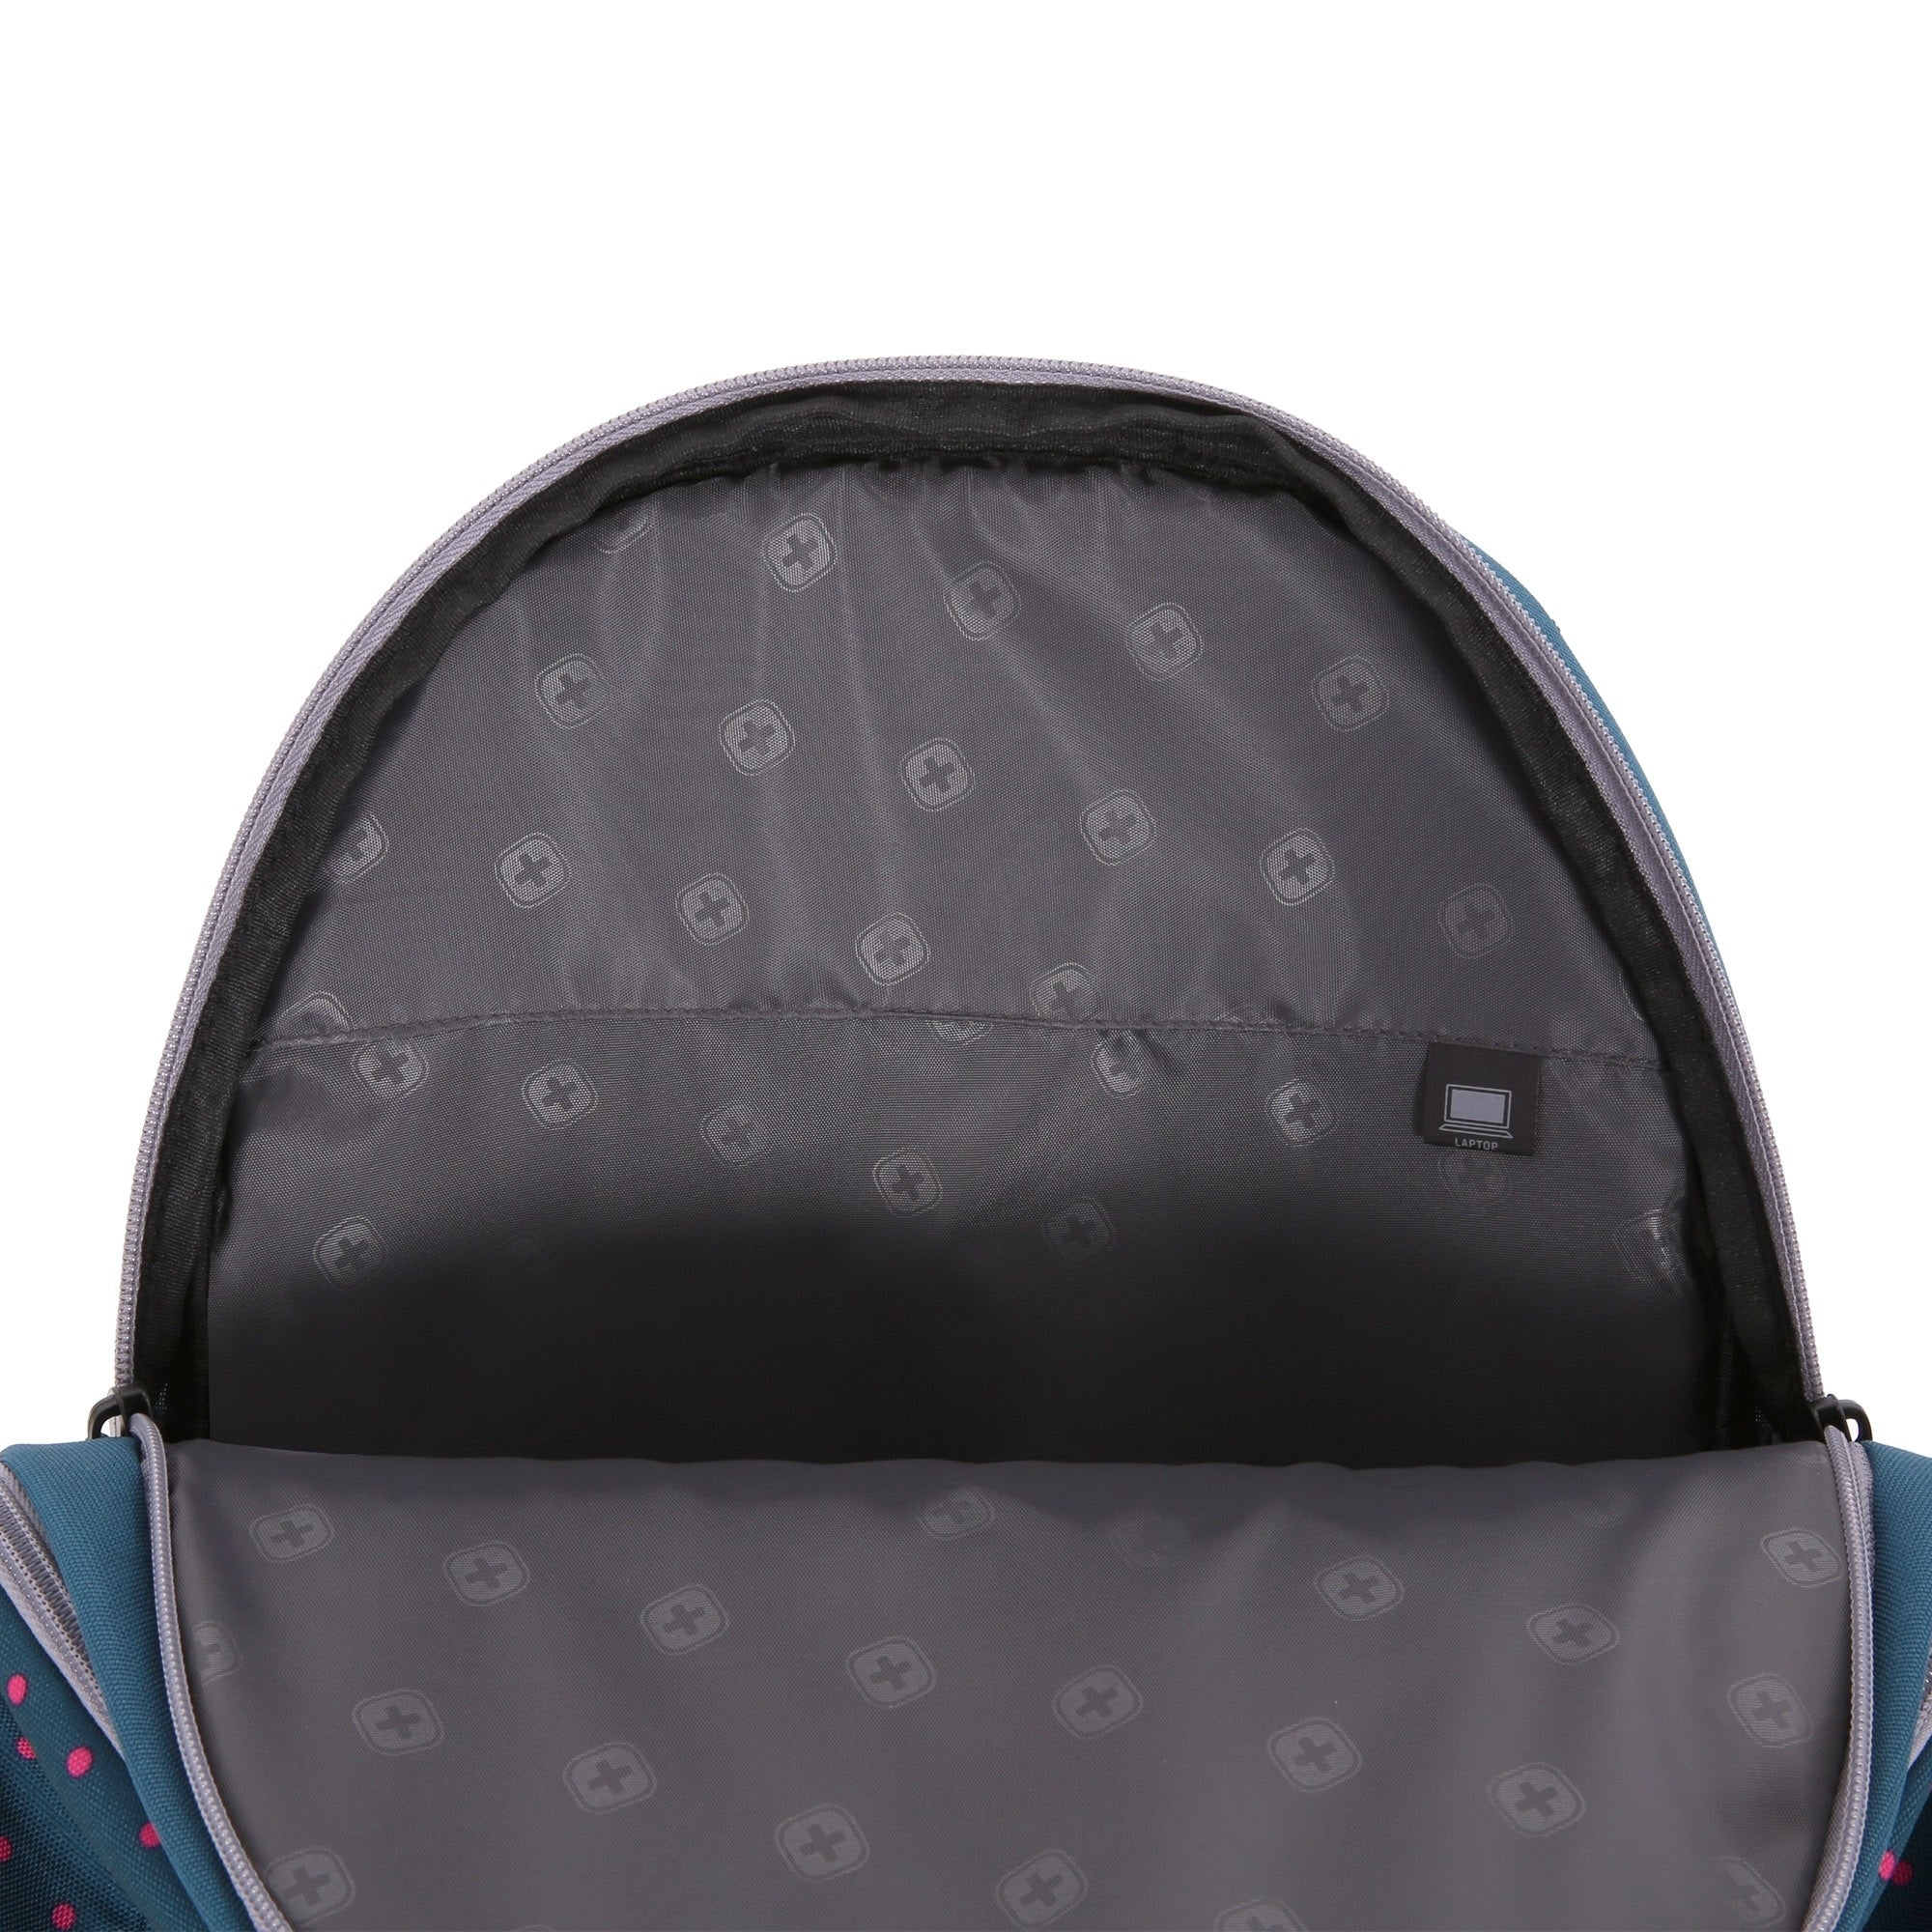 54fd3a6f0b Shop SwissGear Dark Gems- Pink Dots Target 18 inch Laptop Backpack - Free  Shipping Today - Overstock - 20289007